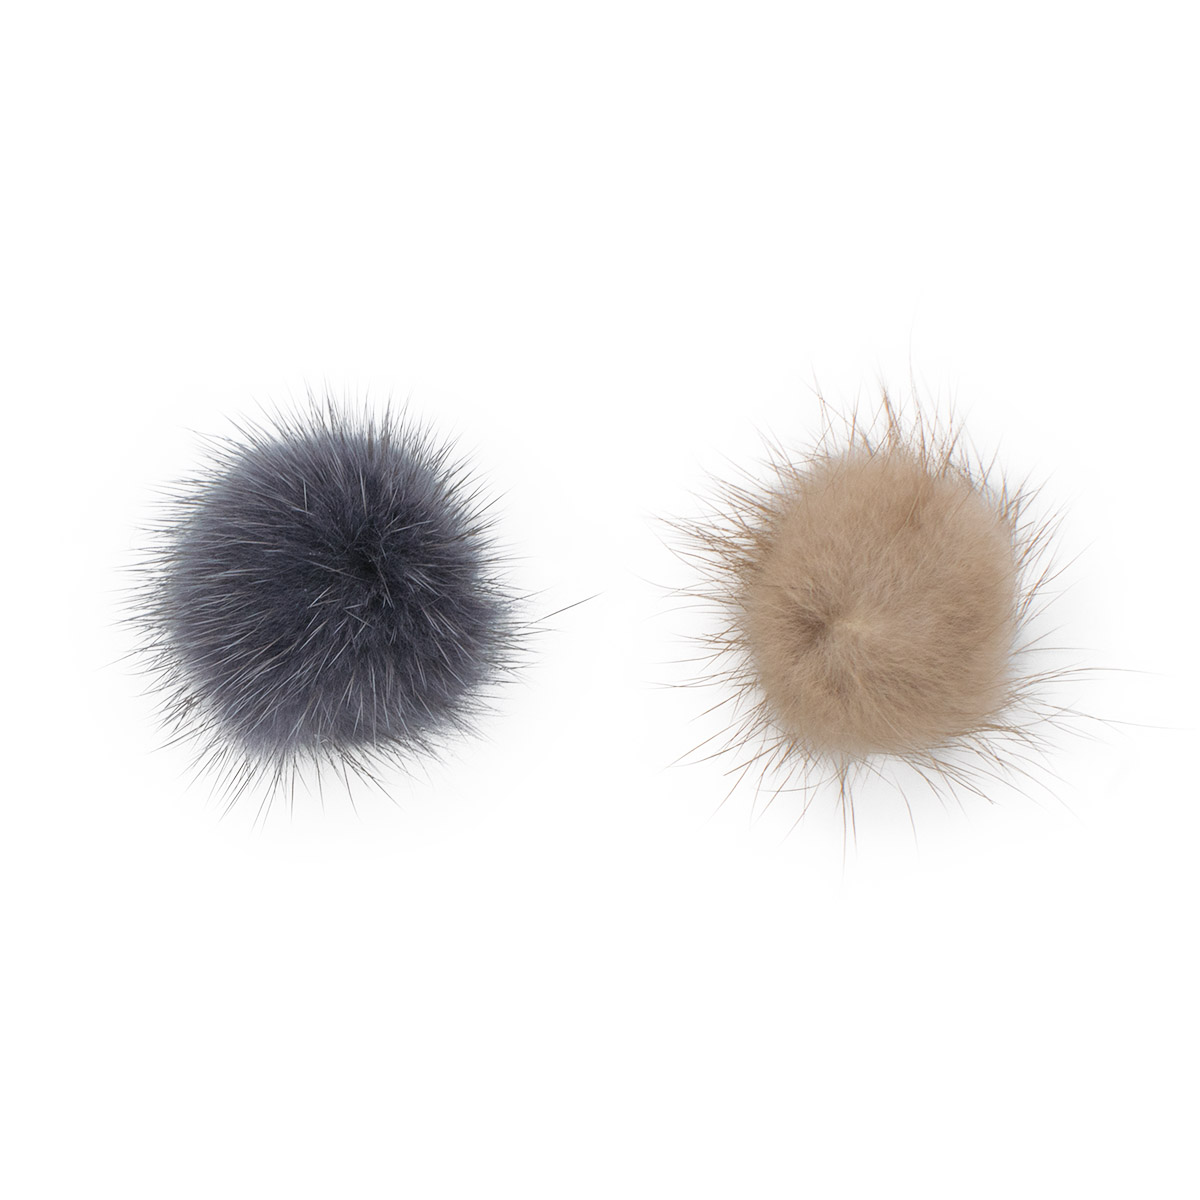 Yk-01040 Set For Creativity Pompon Natural Mink 2 Cm, 2 Pcs/pack